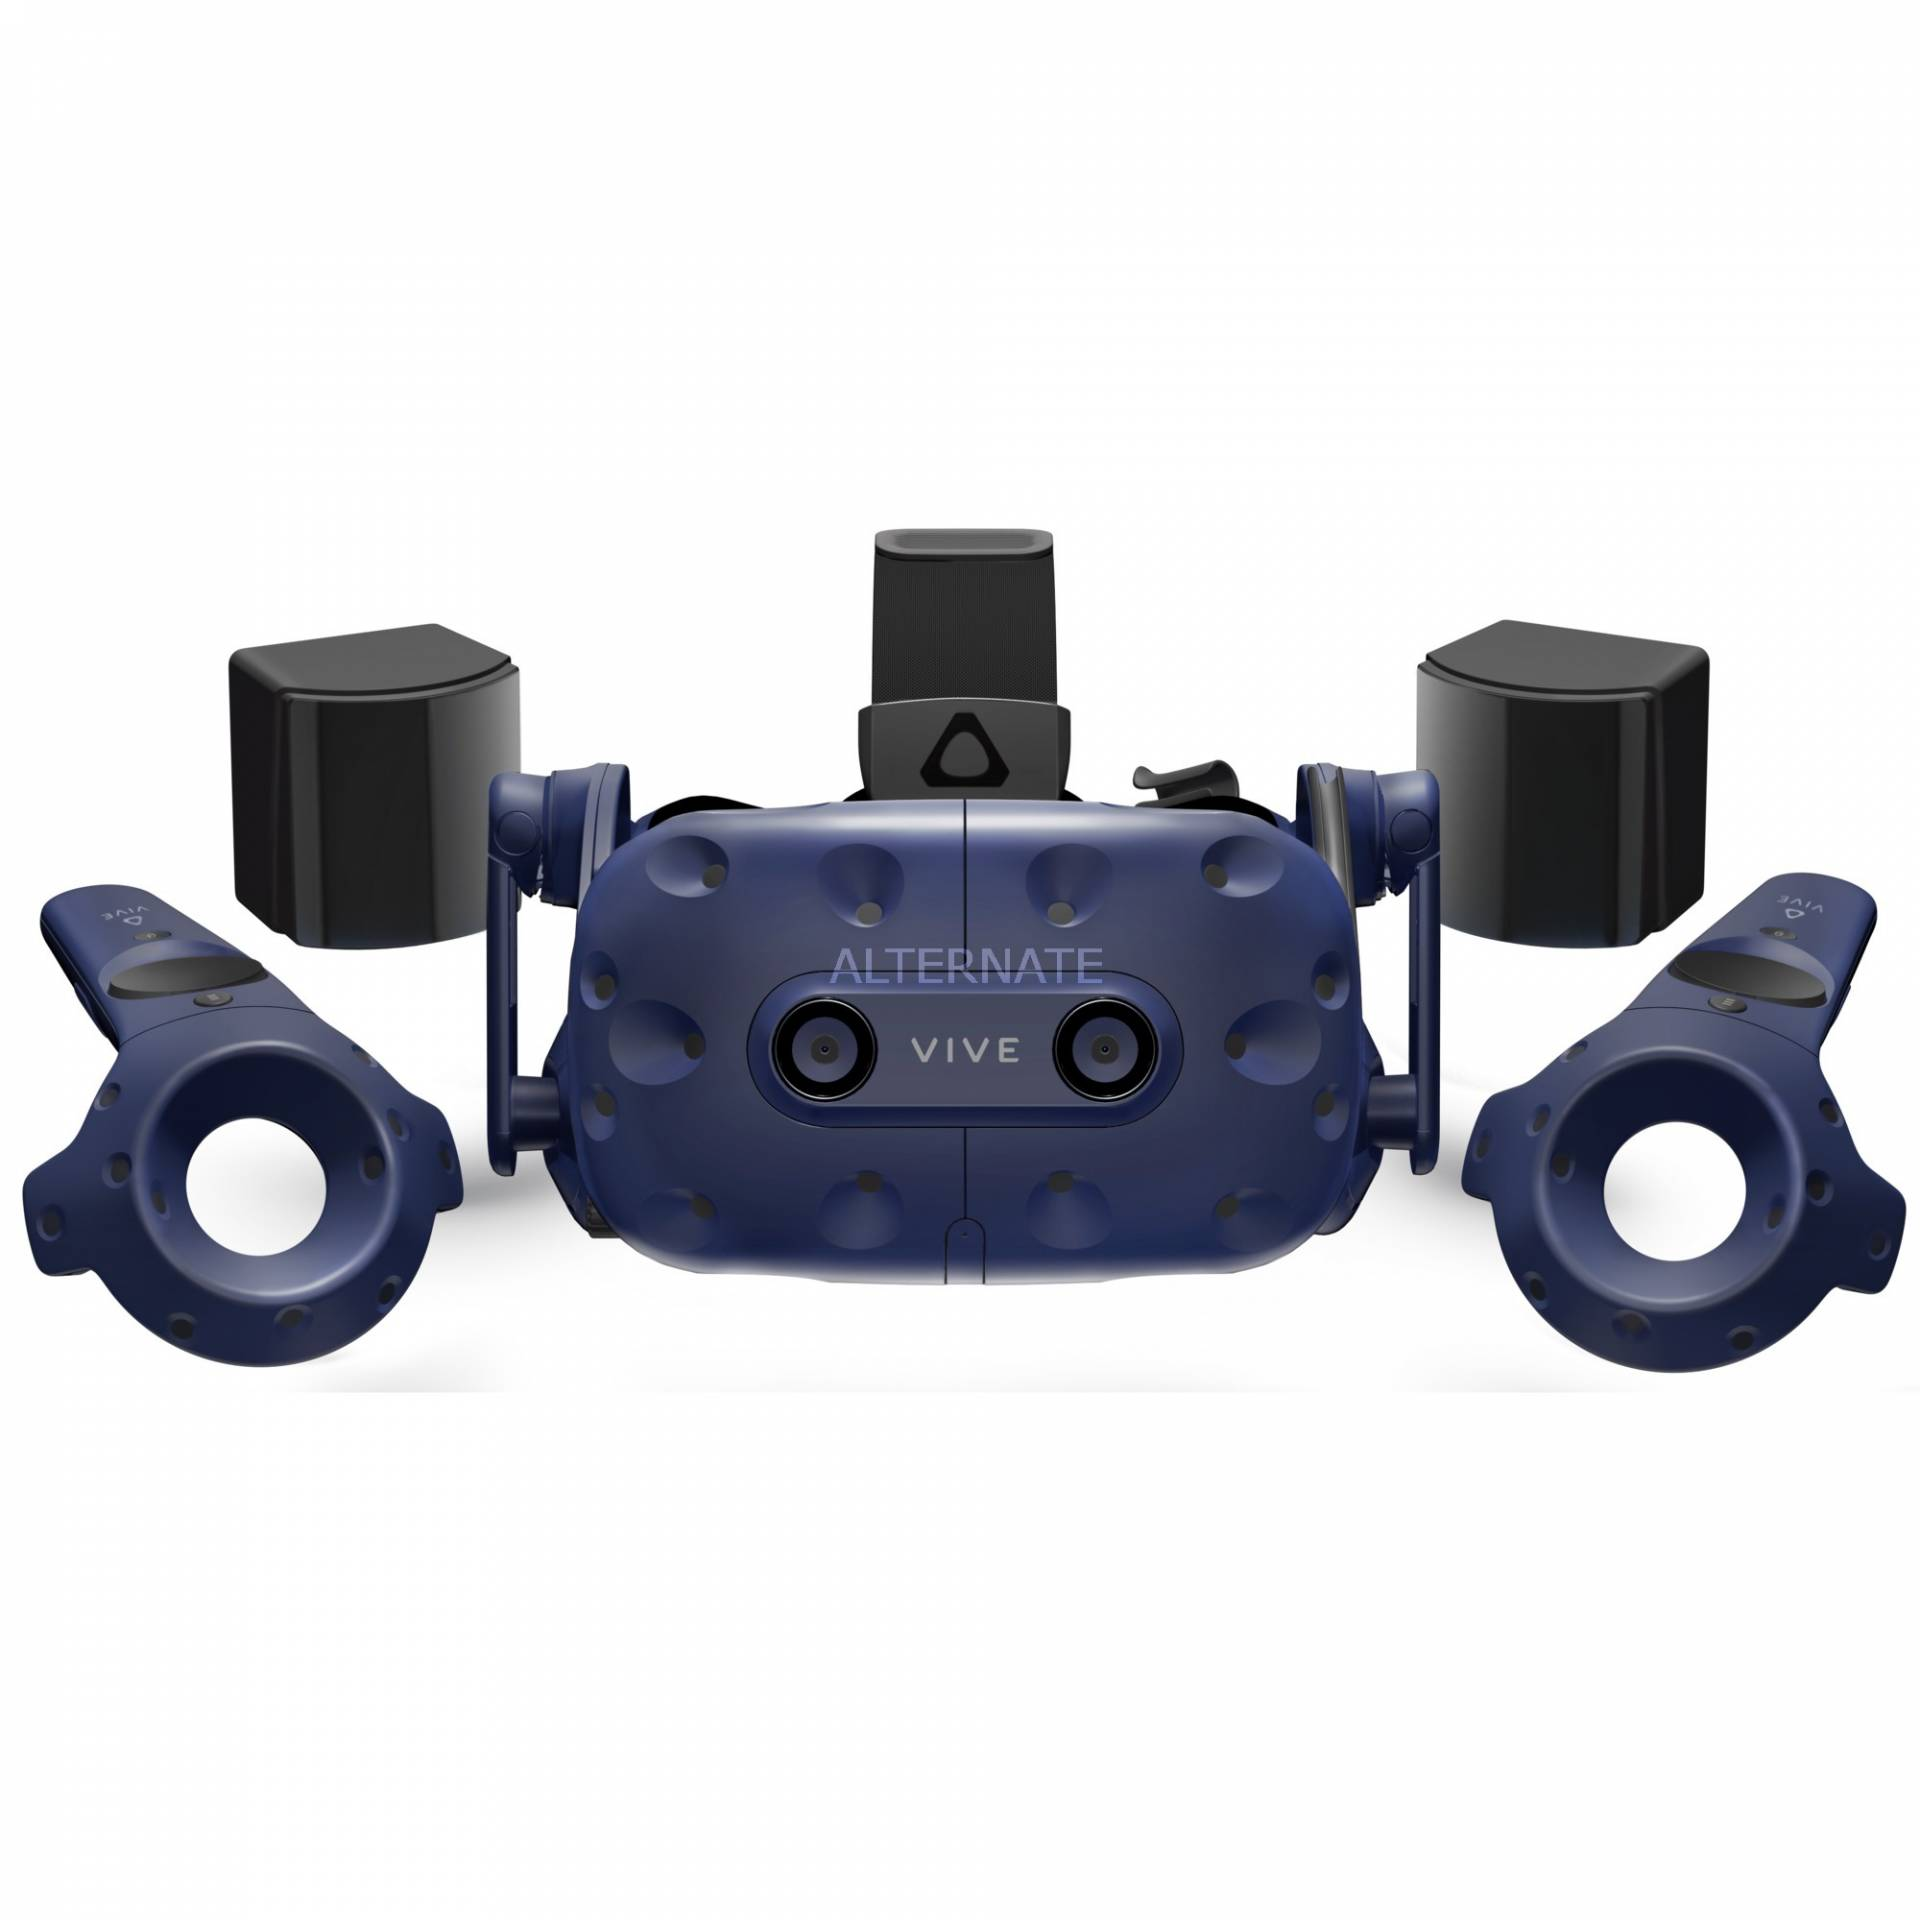 Vive Pro Full Kit, VR-Brille von HTC